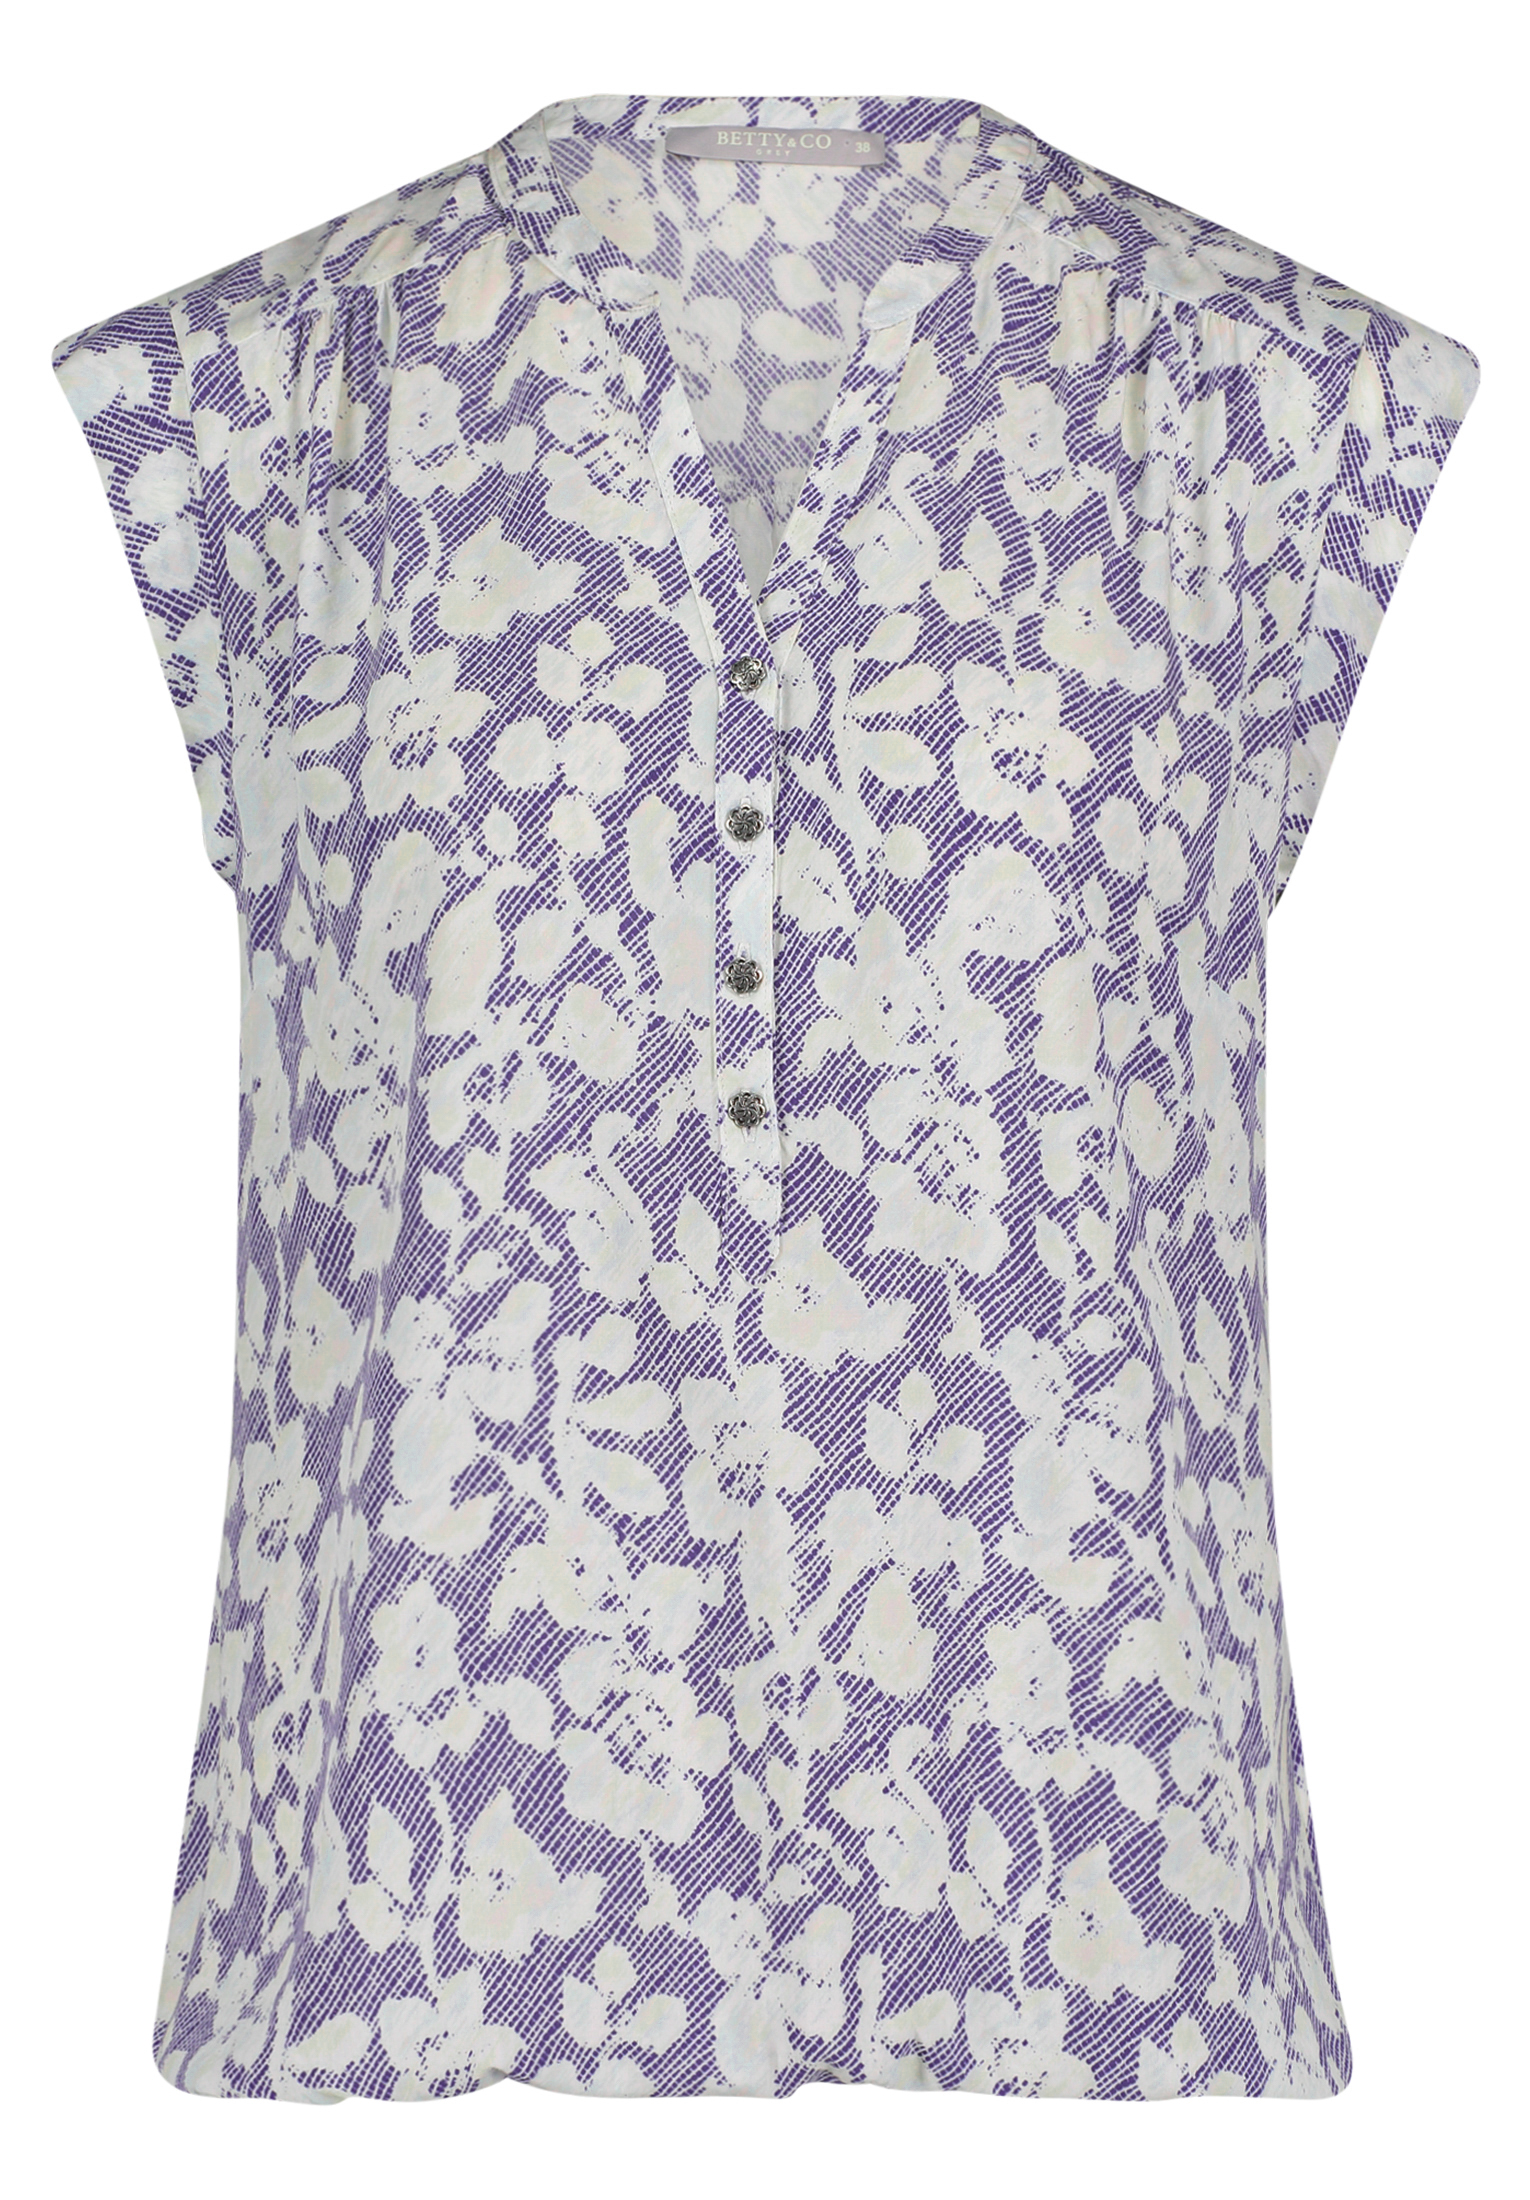 Betty & Co Casual-Bluse mit floralem Muster blau